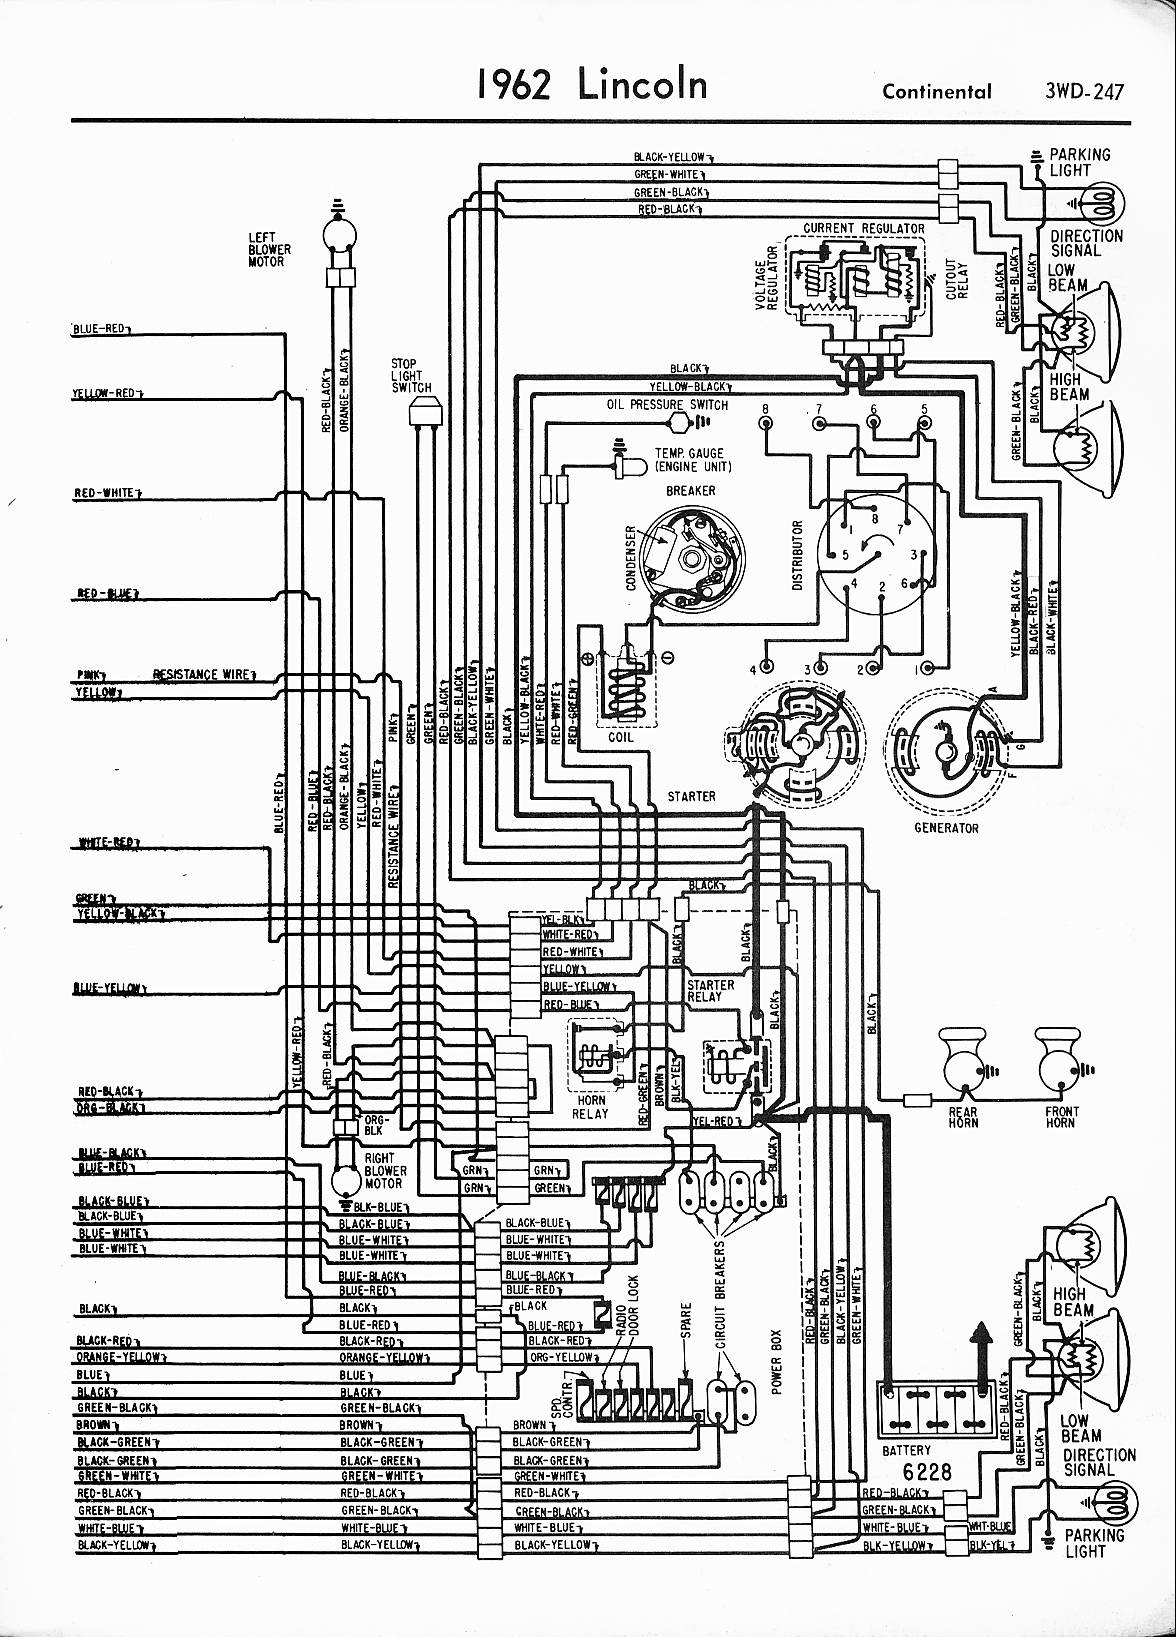 WRG-1822] 94 Lincoln Continental Wiring Diagrams Free on